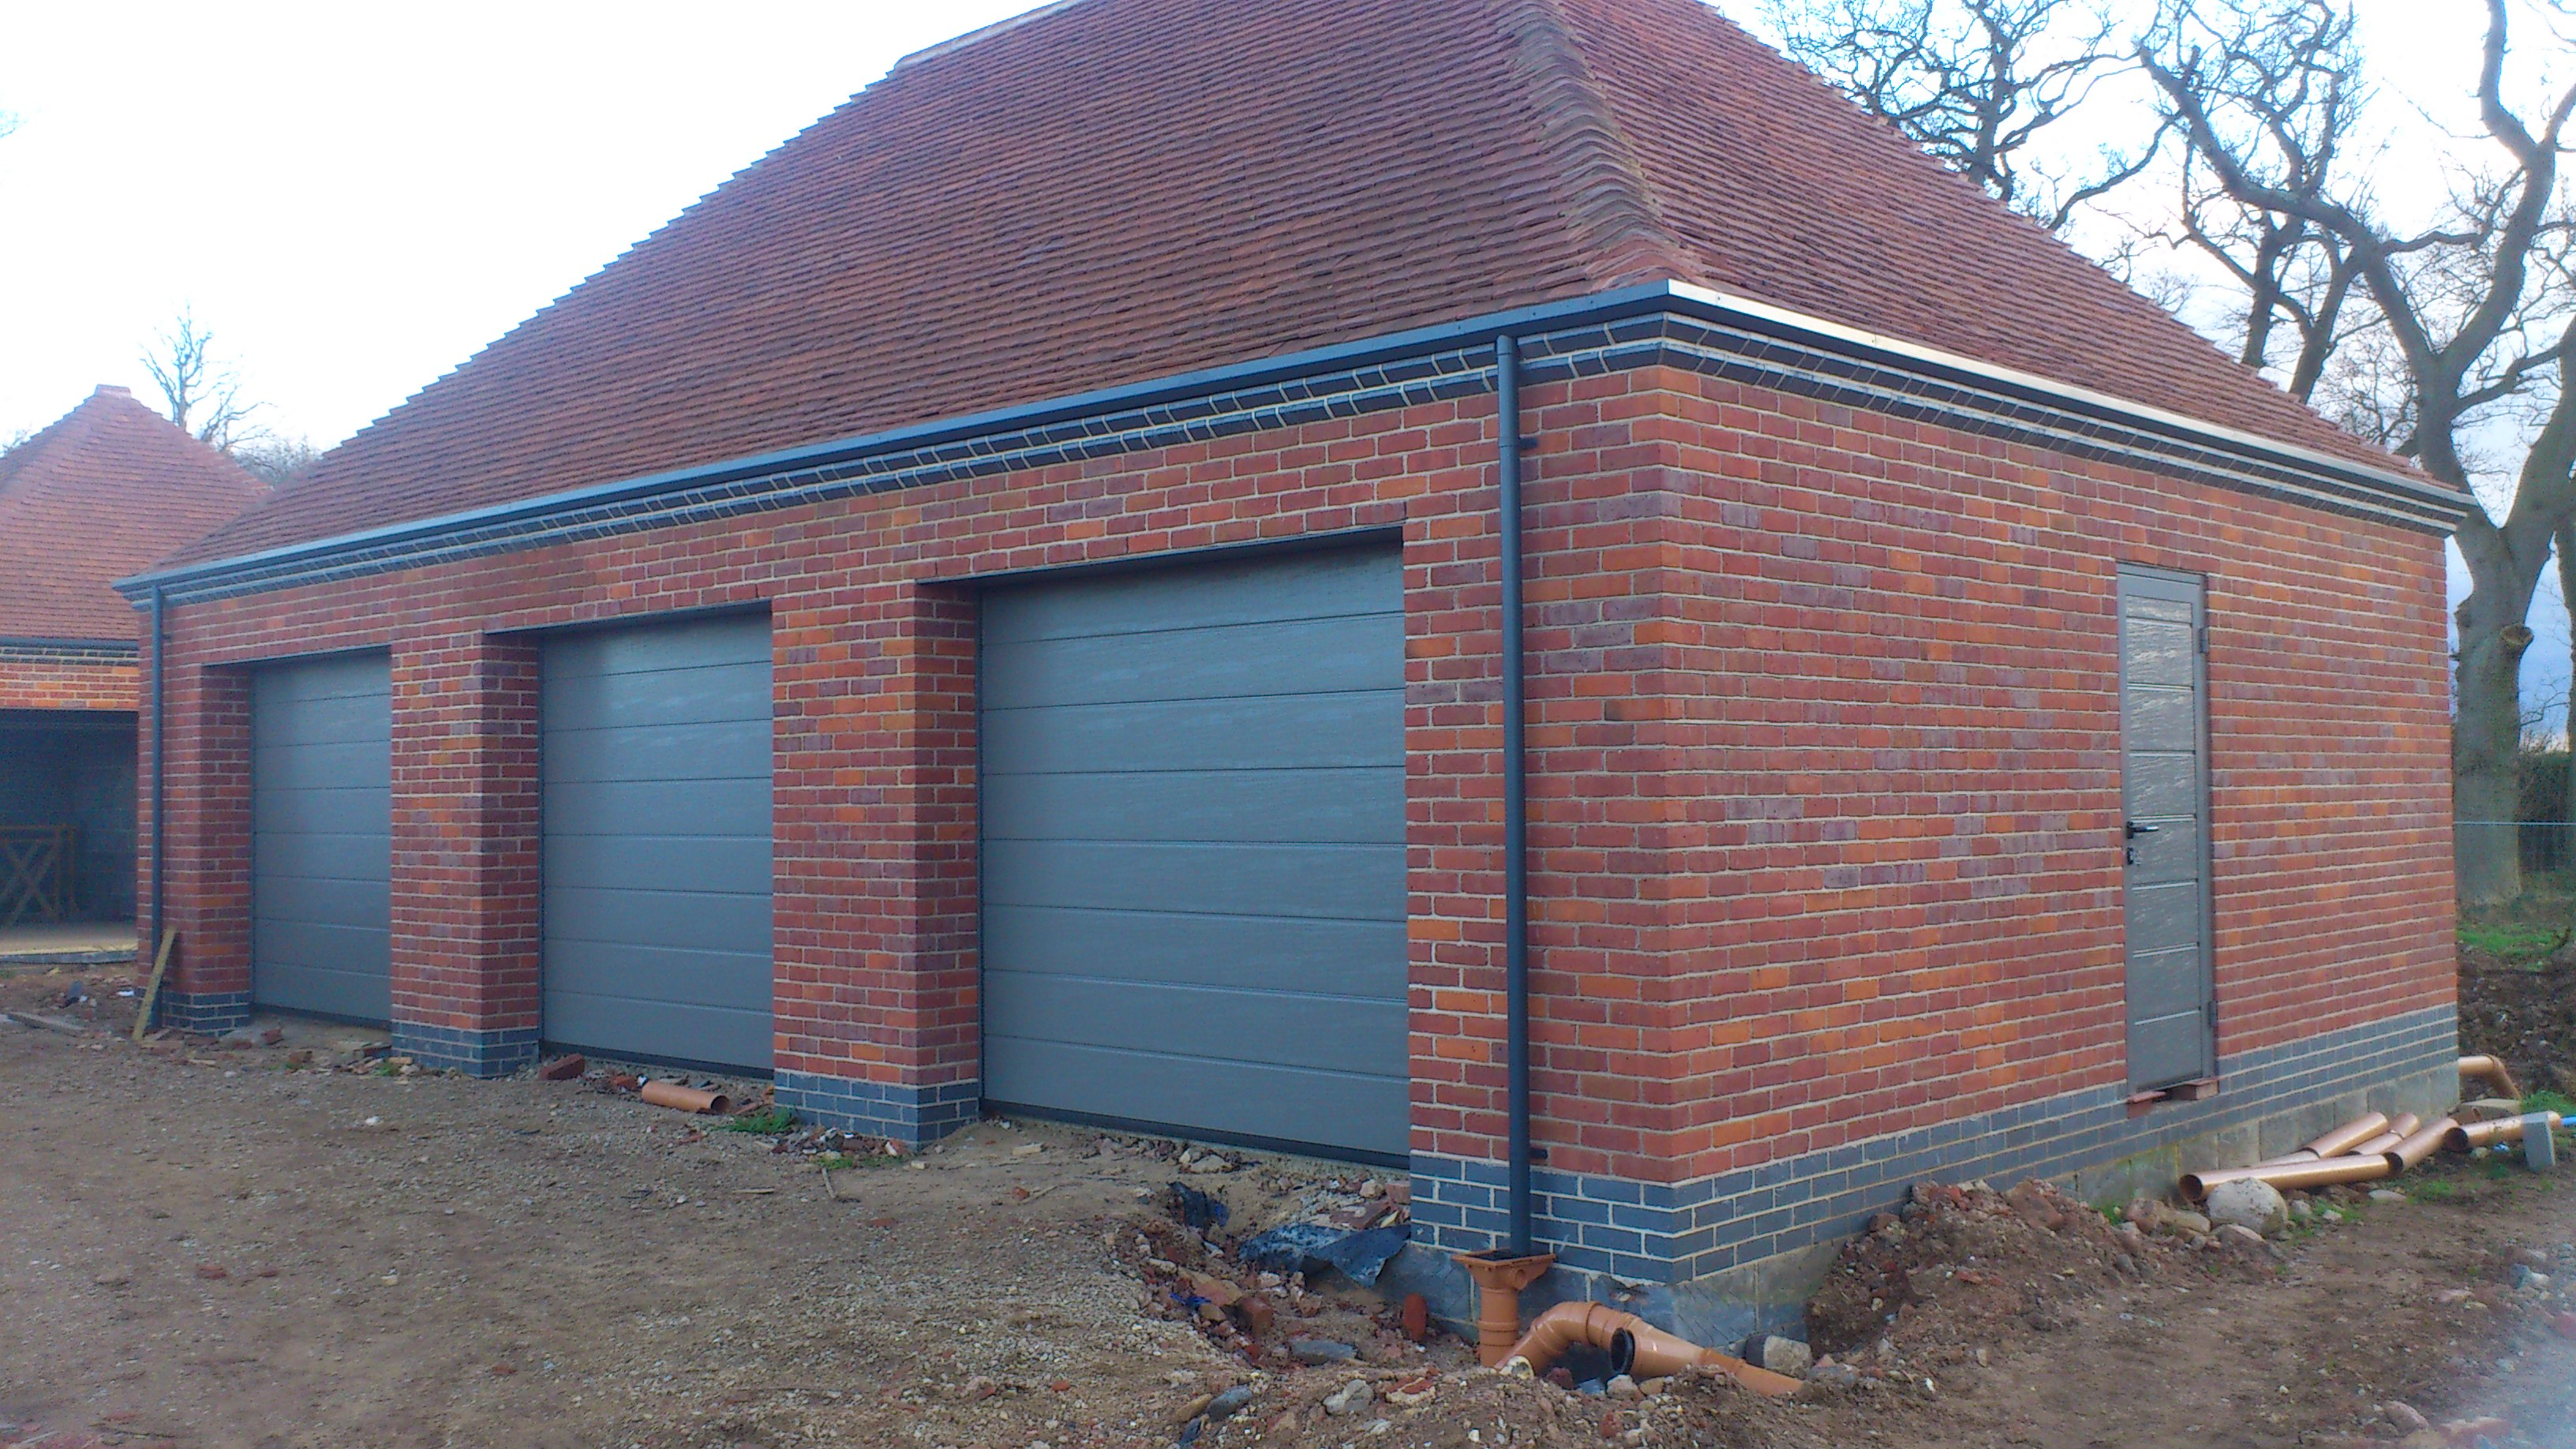 3 x Hormann LPU M Ribbed sectional garage doors \u0026 SupraMatic automatioc with matching side doors fitted in Peterborough. « & Hormann Sectional Garage Doors fitted in Peterborough | Fenland ... Pezcame.Com